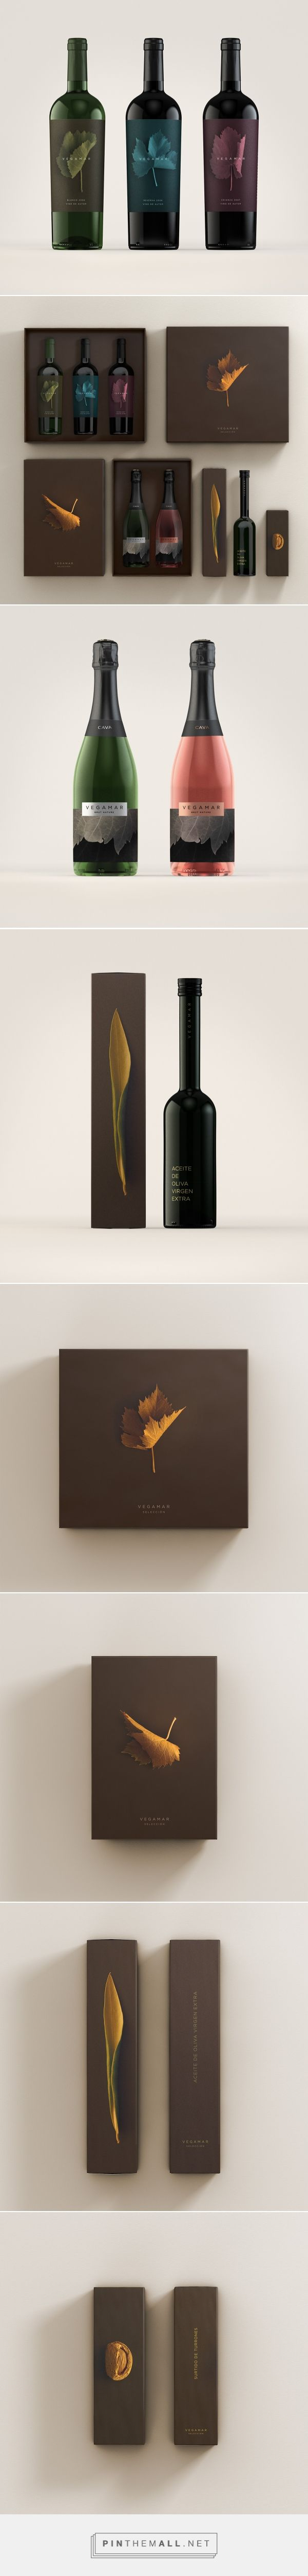 Vegamar Selección Wine Packaging by Lavernia & Cienfuegos | Fivestar Branding Agency – Design and Branding Agency & Curated Inspiration Gallery